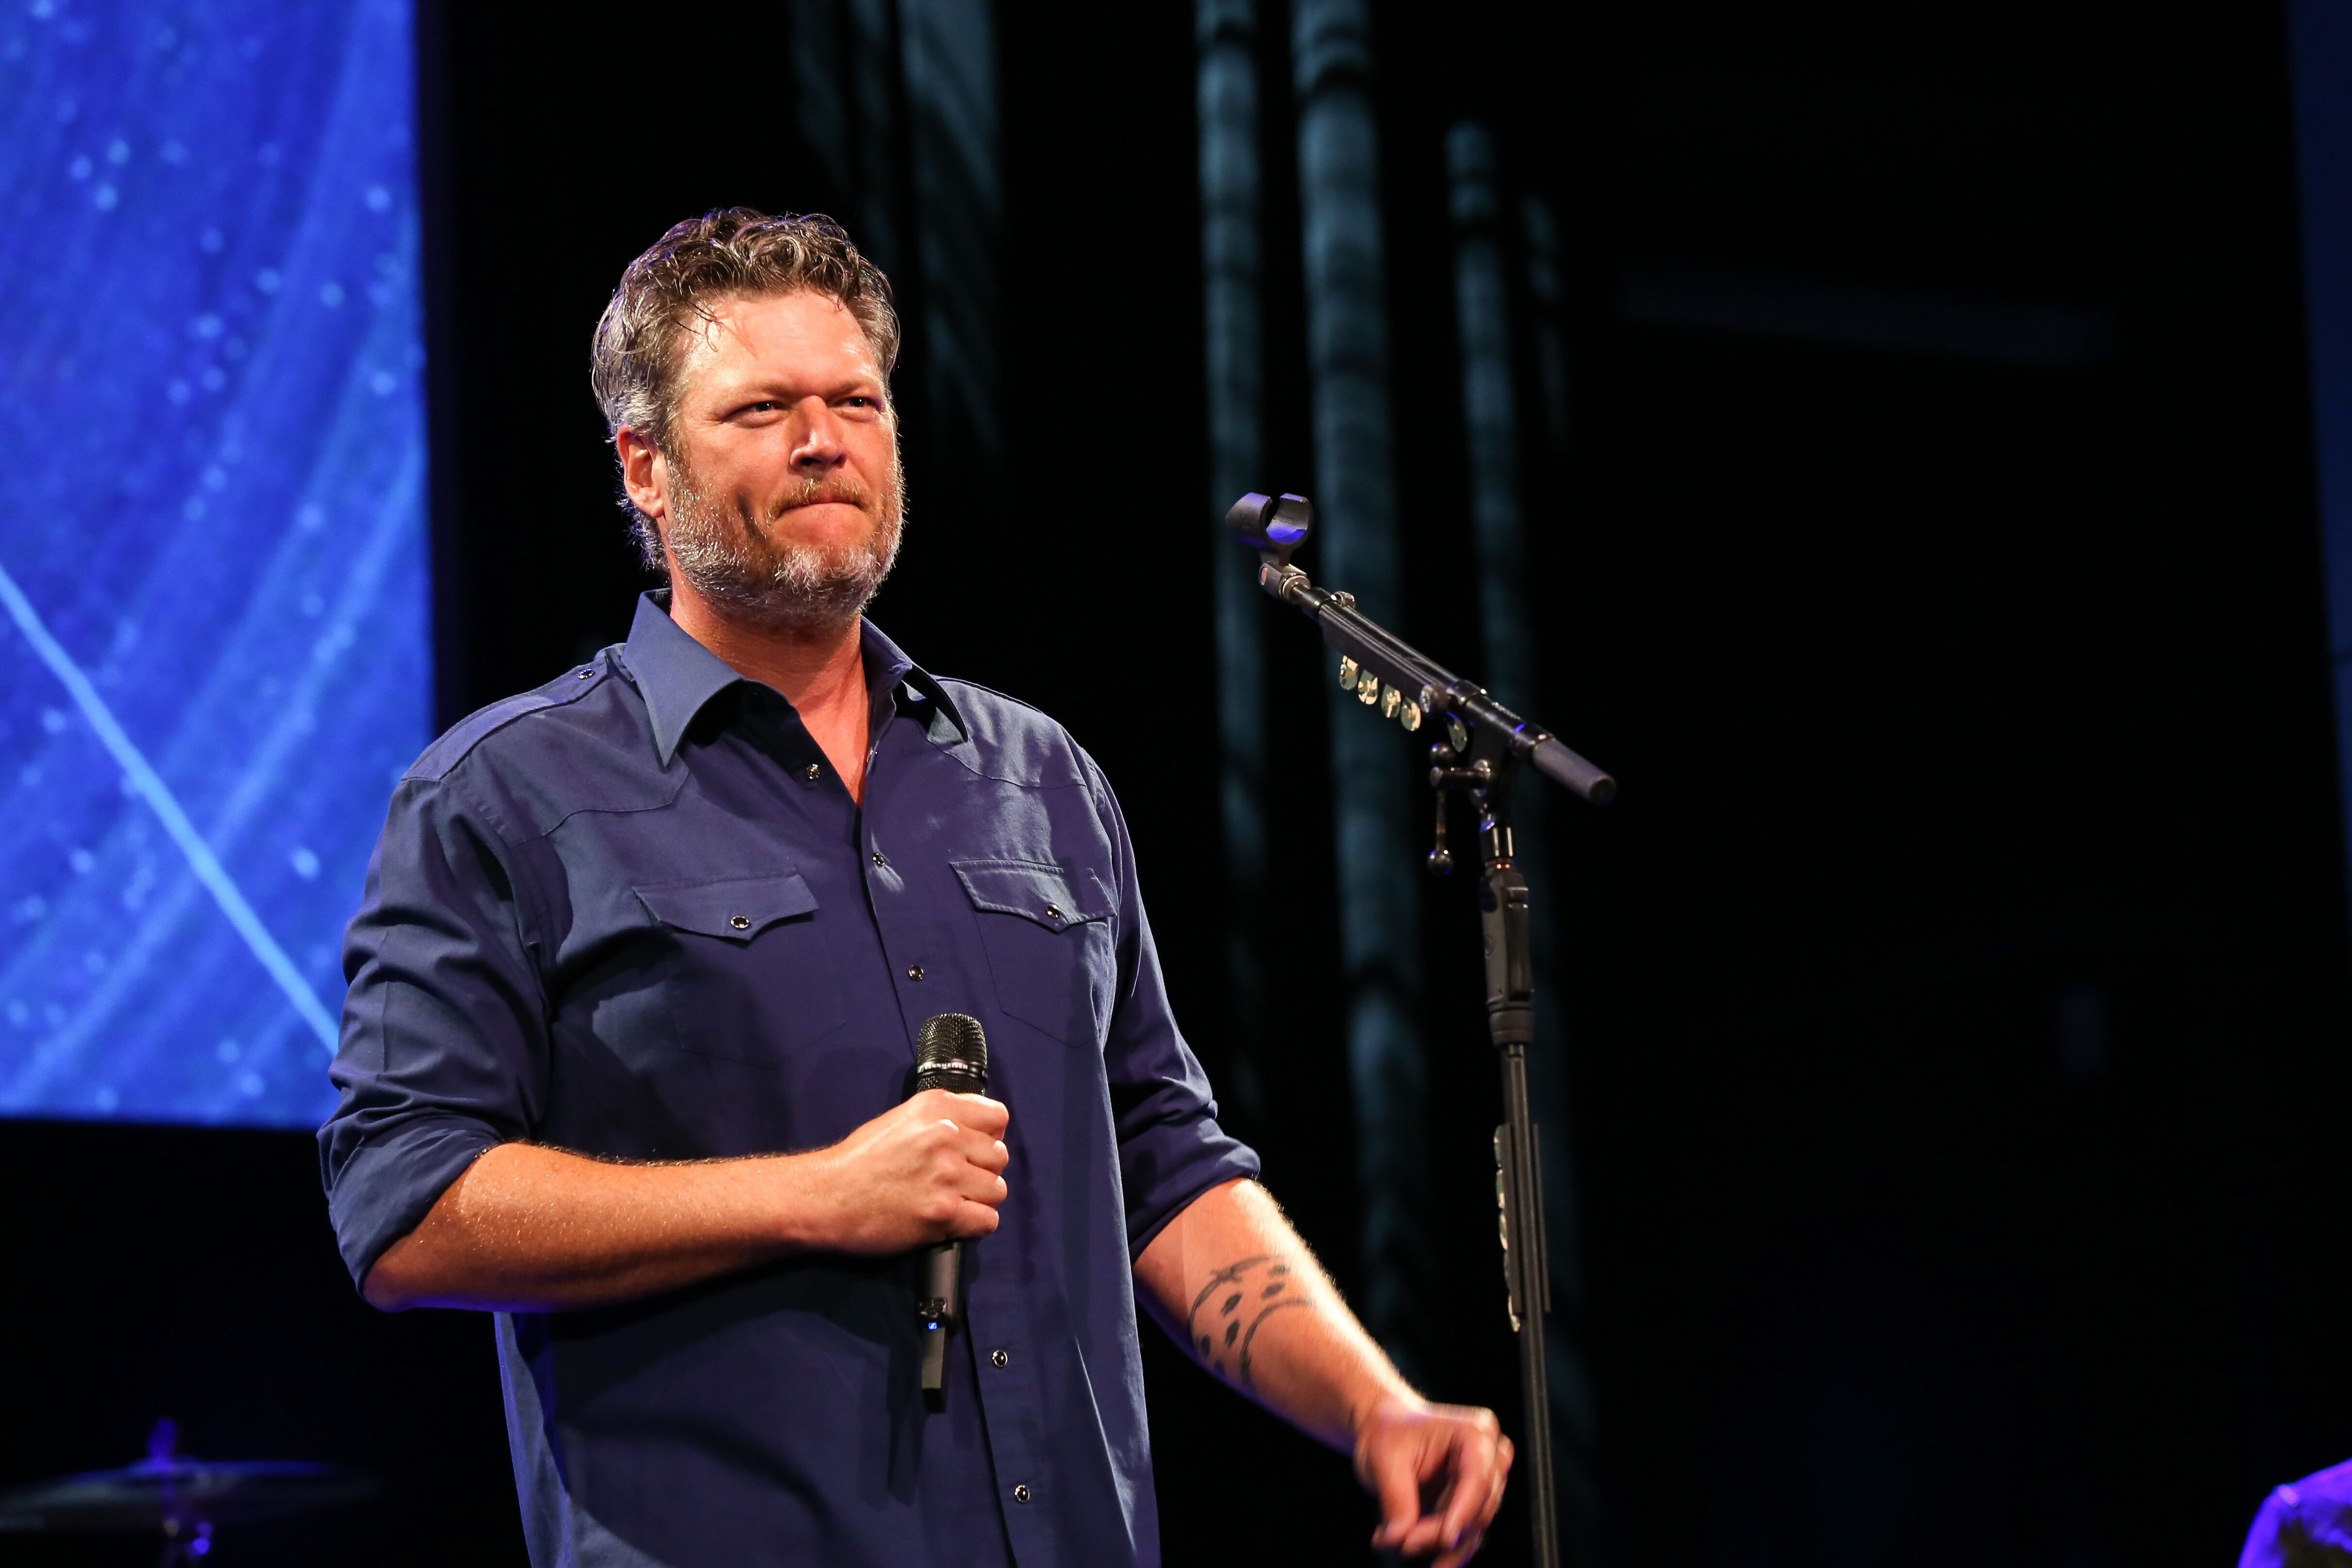 Blake Shelton at the Musicians On Call 20th Anniversary Kickoff Celebration on May 31, 2019, in Nashville, Tennessee | Photo:Terry Wyatt/Getty Images